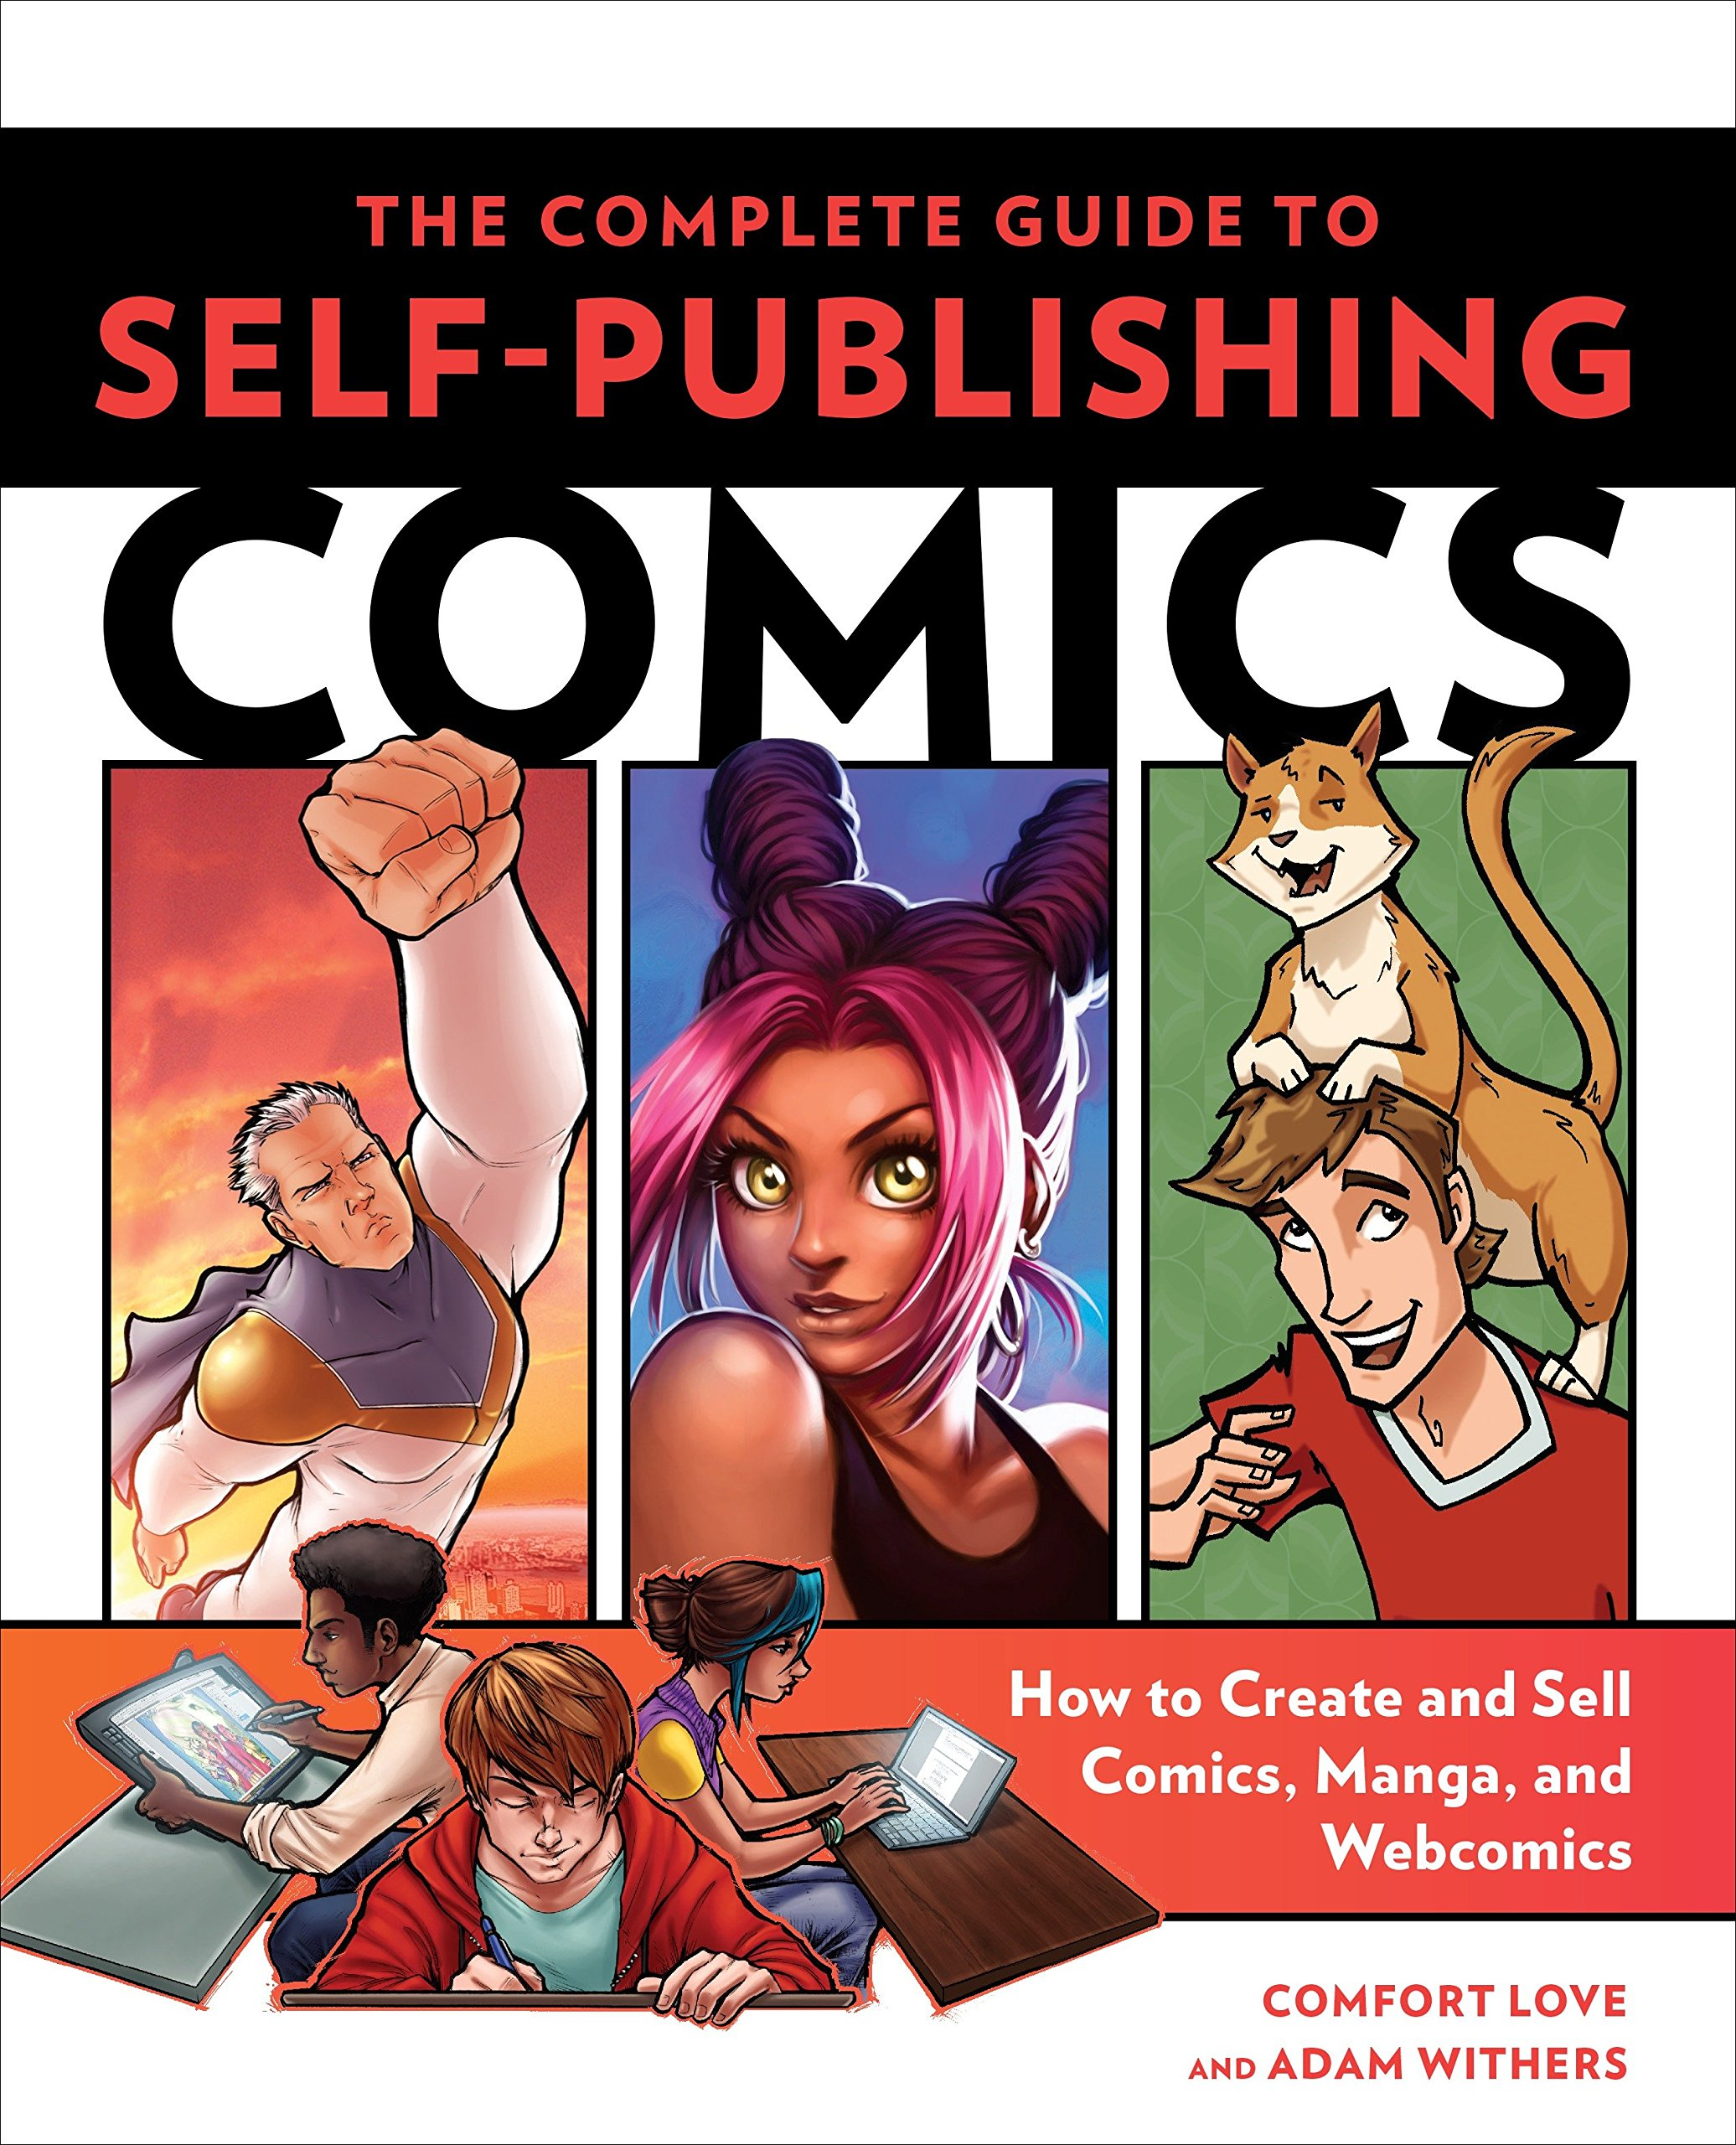 The Complete Guide to Self-Publishing Comics: How  to Create and Sell Comic Books, Manga, and Webcomics by Watson-Guptill Publications